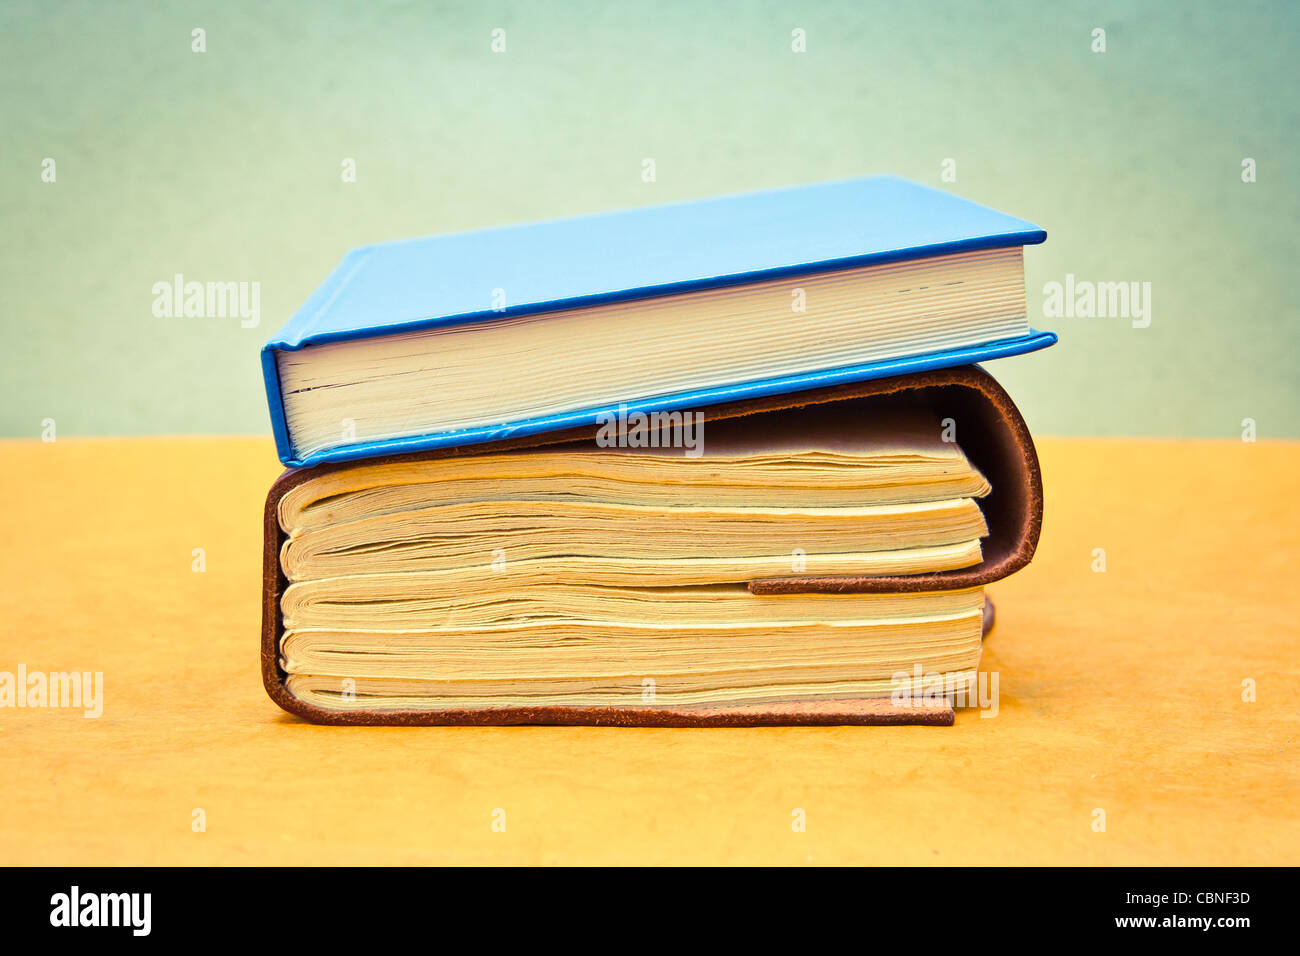 Two books in pastel tones as a still life image - Stock Image